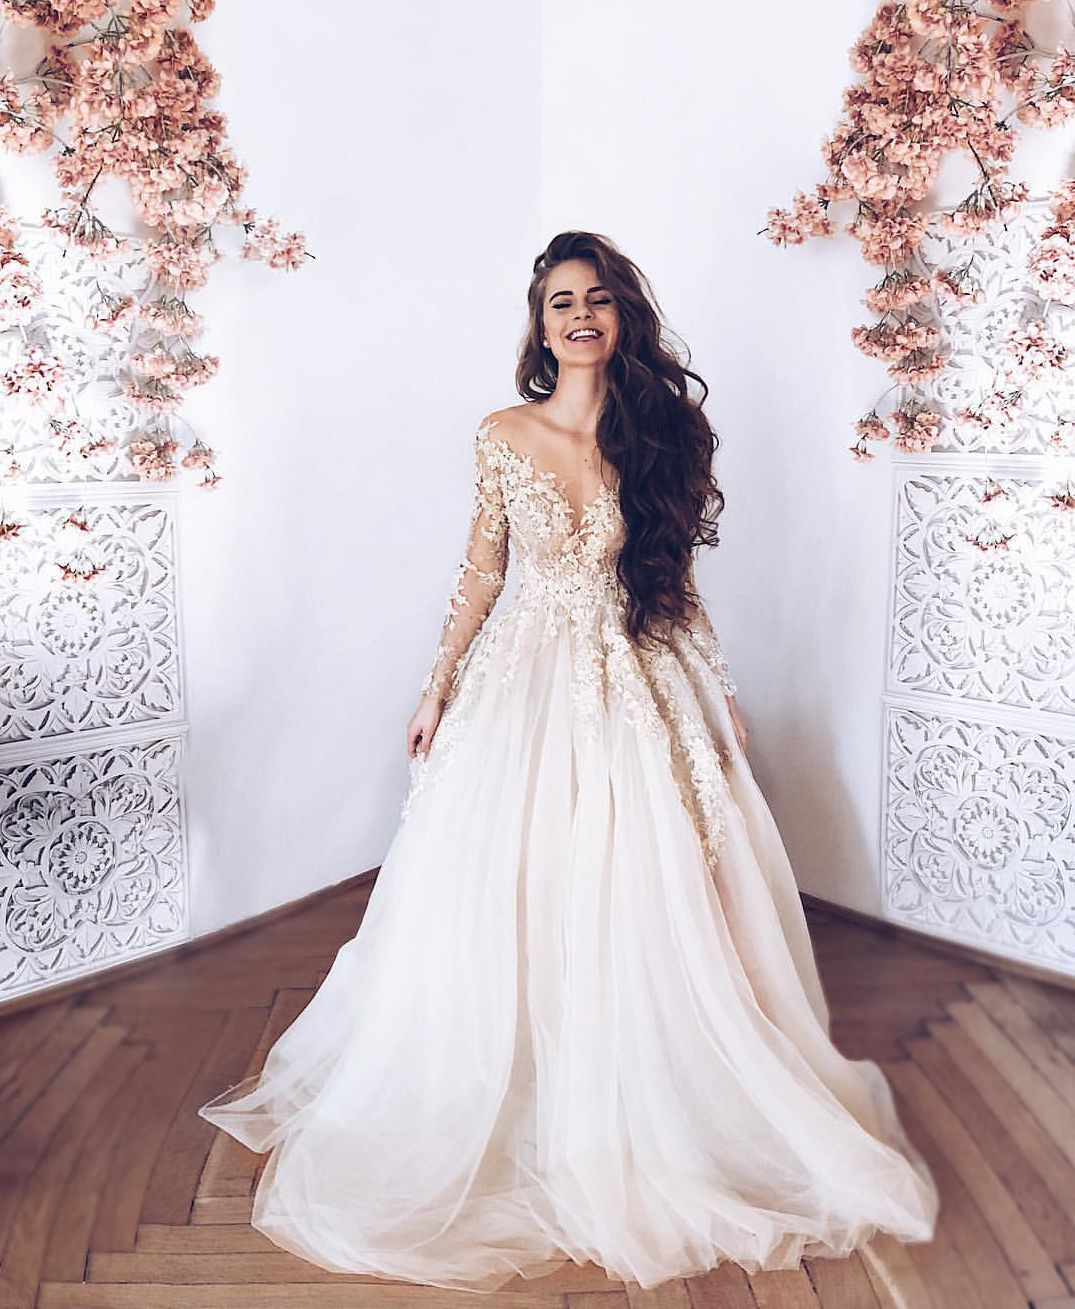 Light Champagne Lace Tulle Long Prom Dress Long Sleeve Evening Dress From Dress Idea In 2021 Prom Dresses Long With Sleeves Wedding Dress Long Sleeve Lace Weddings [ 1309 x 1075 Pixel ]